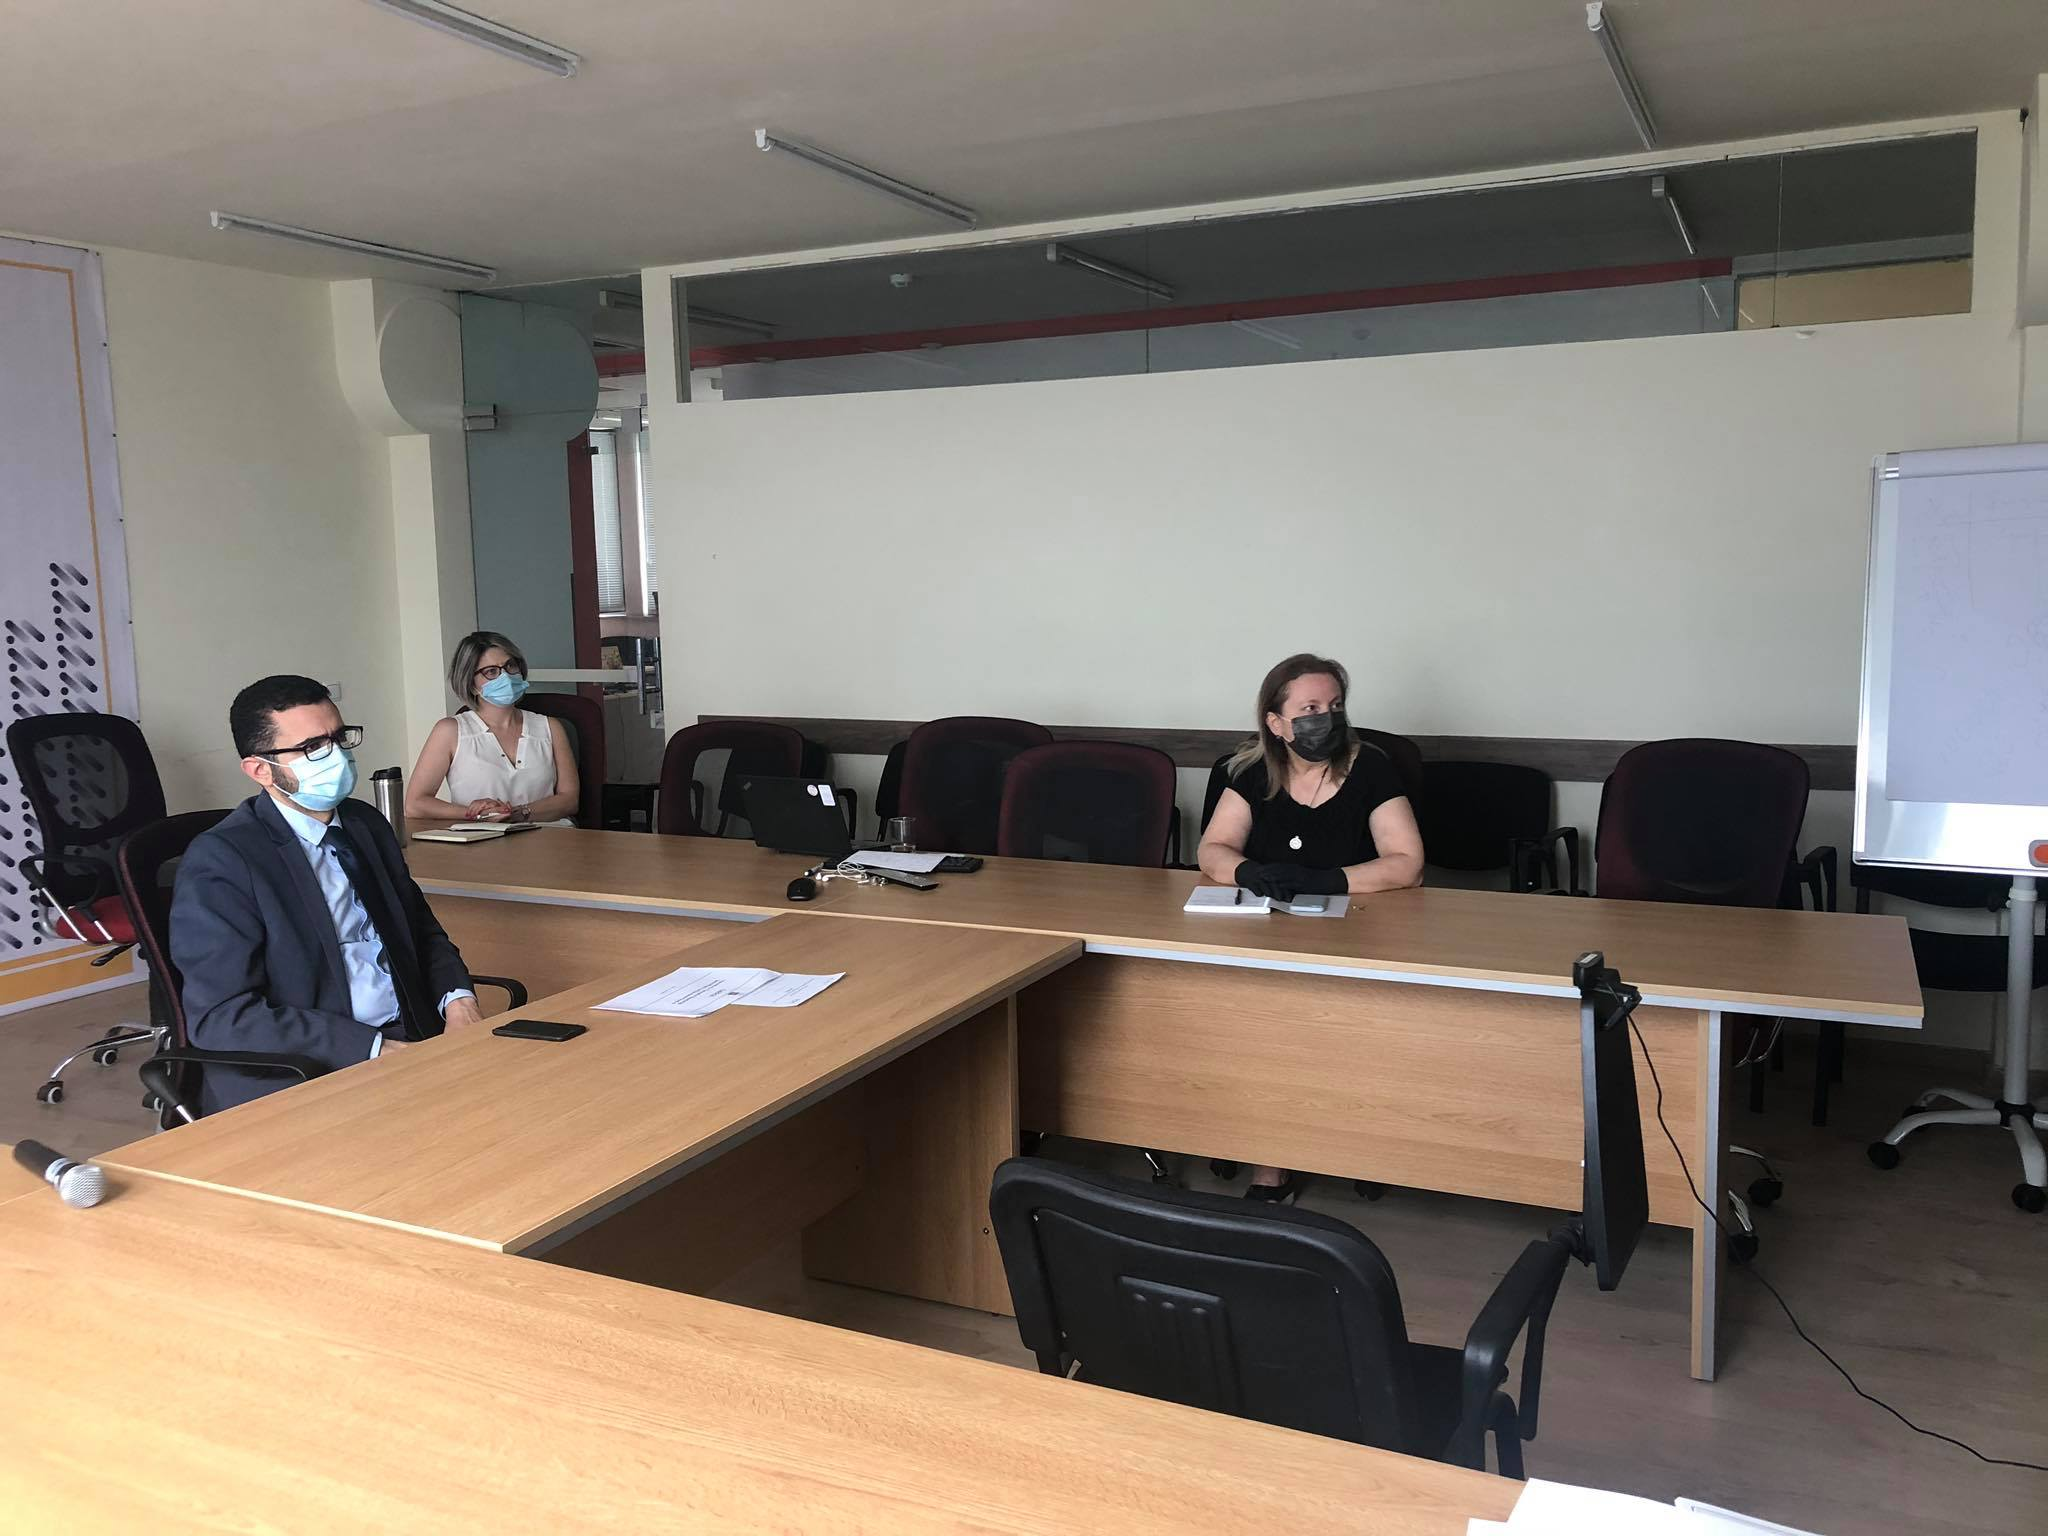 Armen Ghazaryan, head of the Migration Service during the meeting.